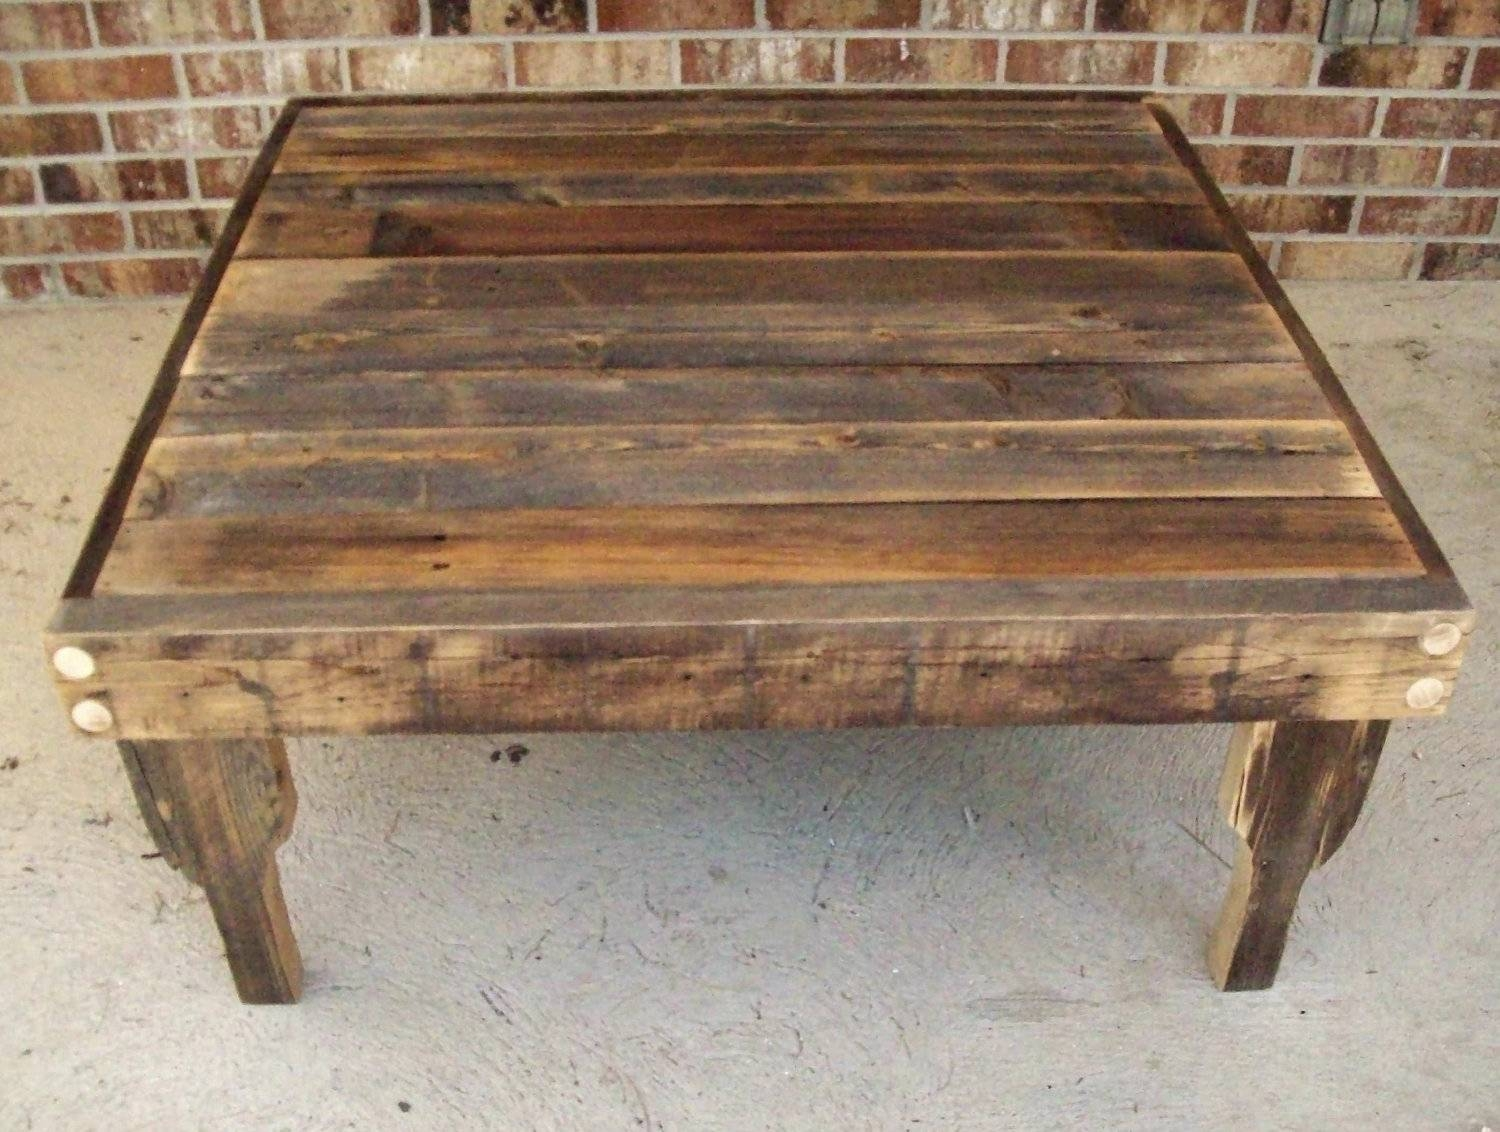 Coffee Tables Ideas: Modern Large Wooden Coffee Table Large Dark throughout Huge Square Coffee Tables (Image 9 of 15)